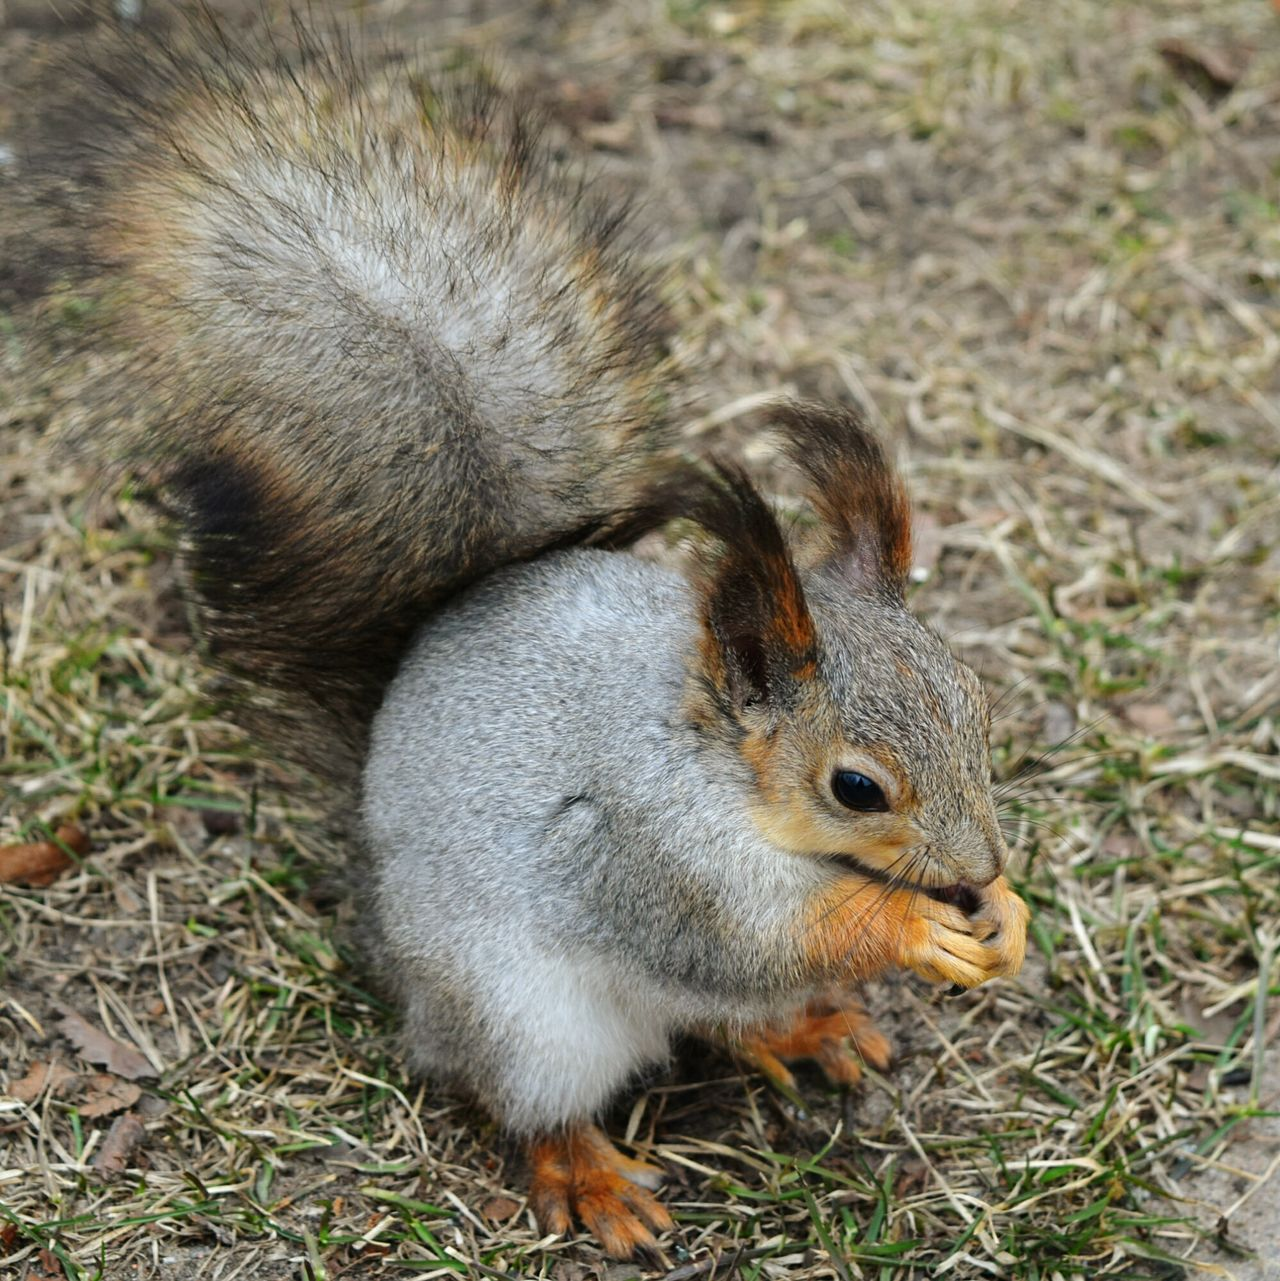 Taking Photos Spring Photography Nature Photography Beauty In Nature Squirrel Elagin Island Park Eating Enjoying Life